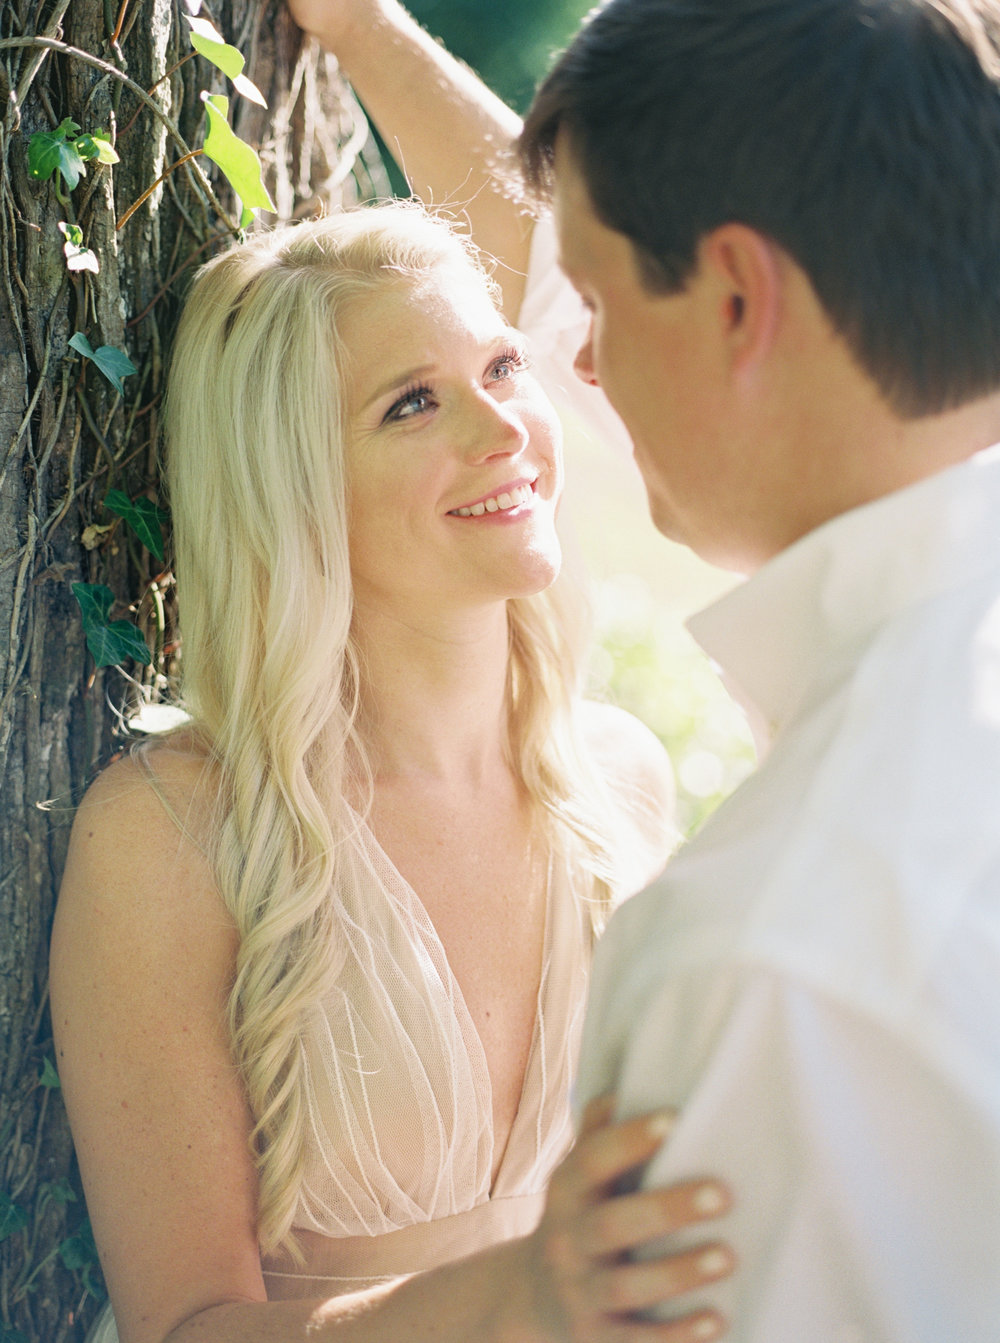 Erin_Johnny_Engagement_Dunaway_Gardens_Georgia_Film_Fallen_Photography-67.JPG